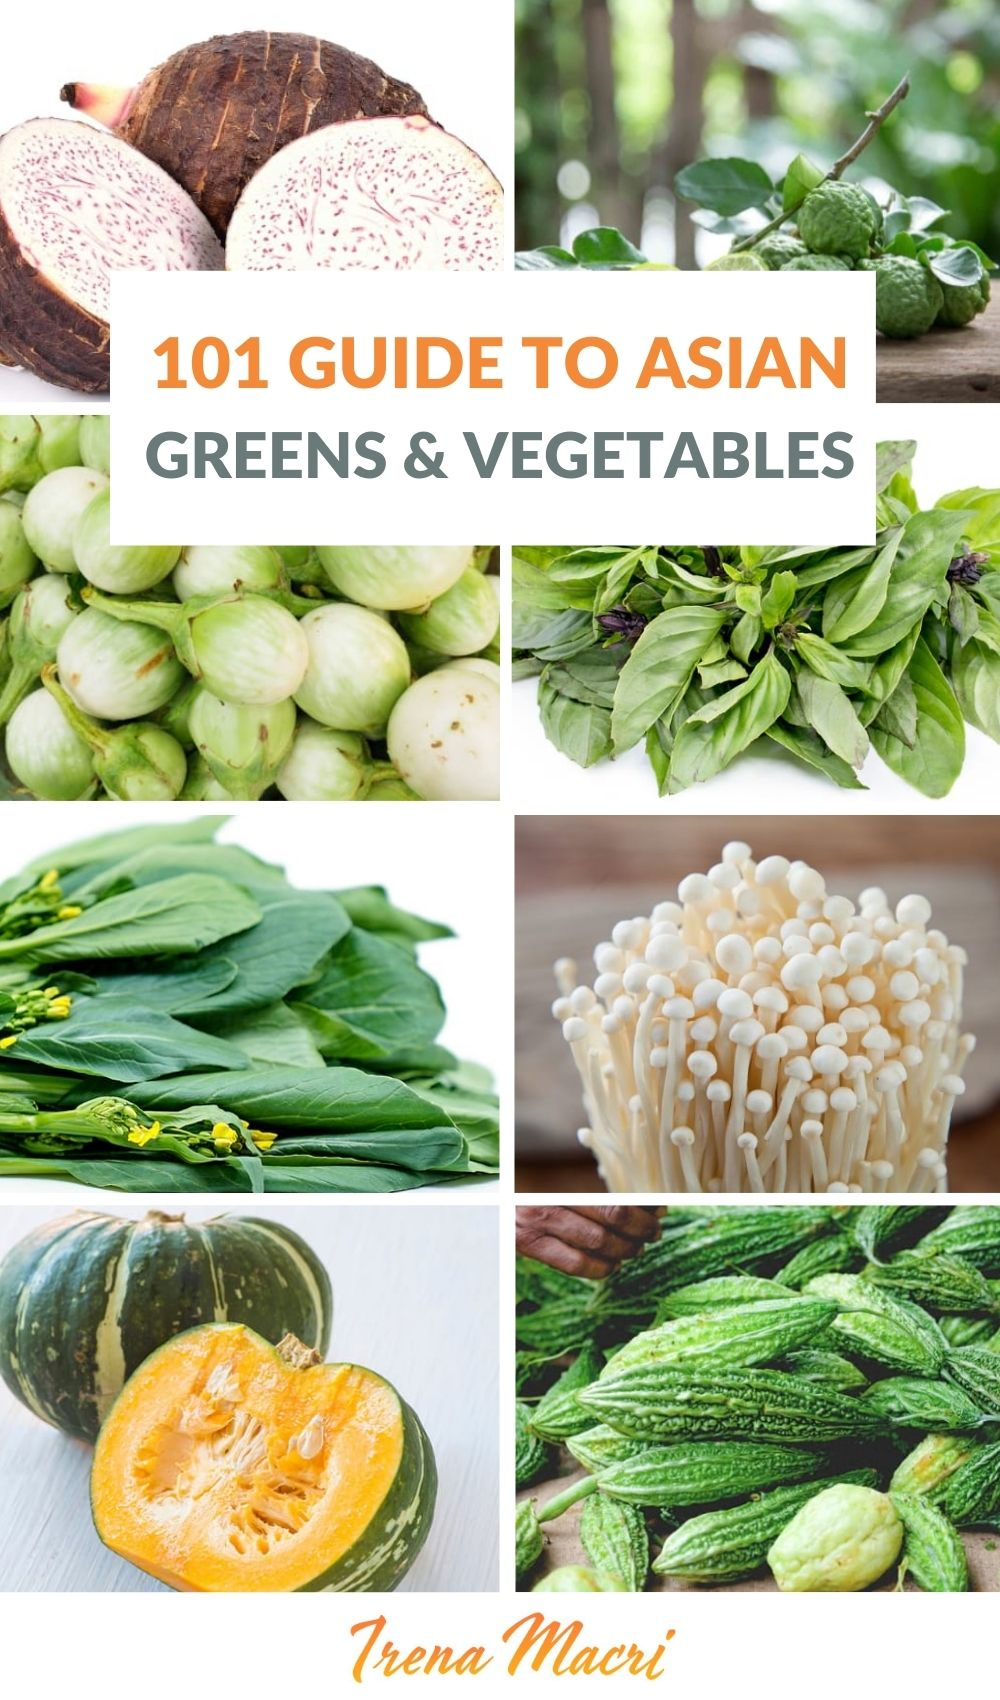 101 Guide To Asian Greens, Vegetables, Mushrooms & Herbs